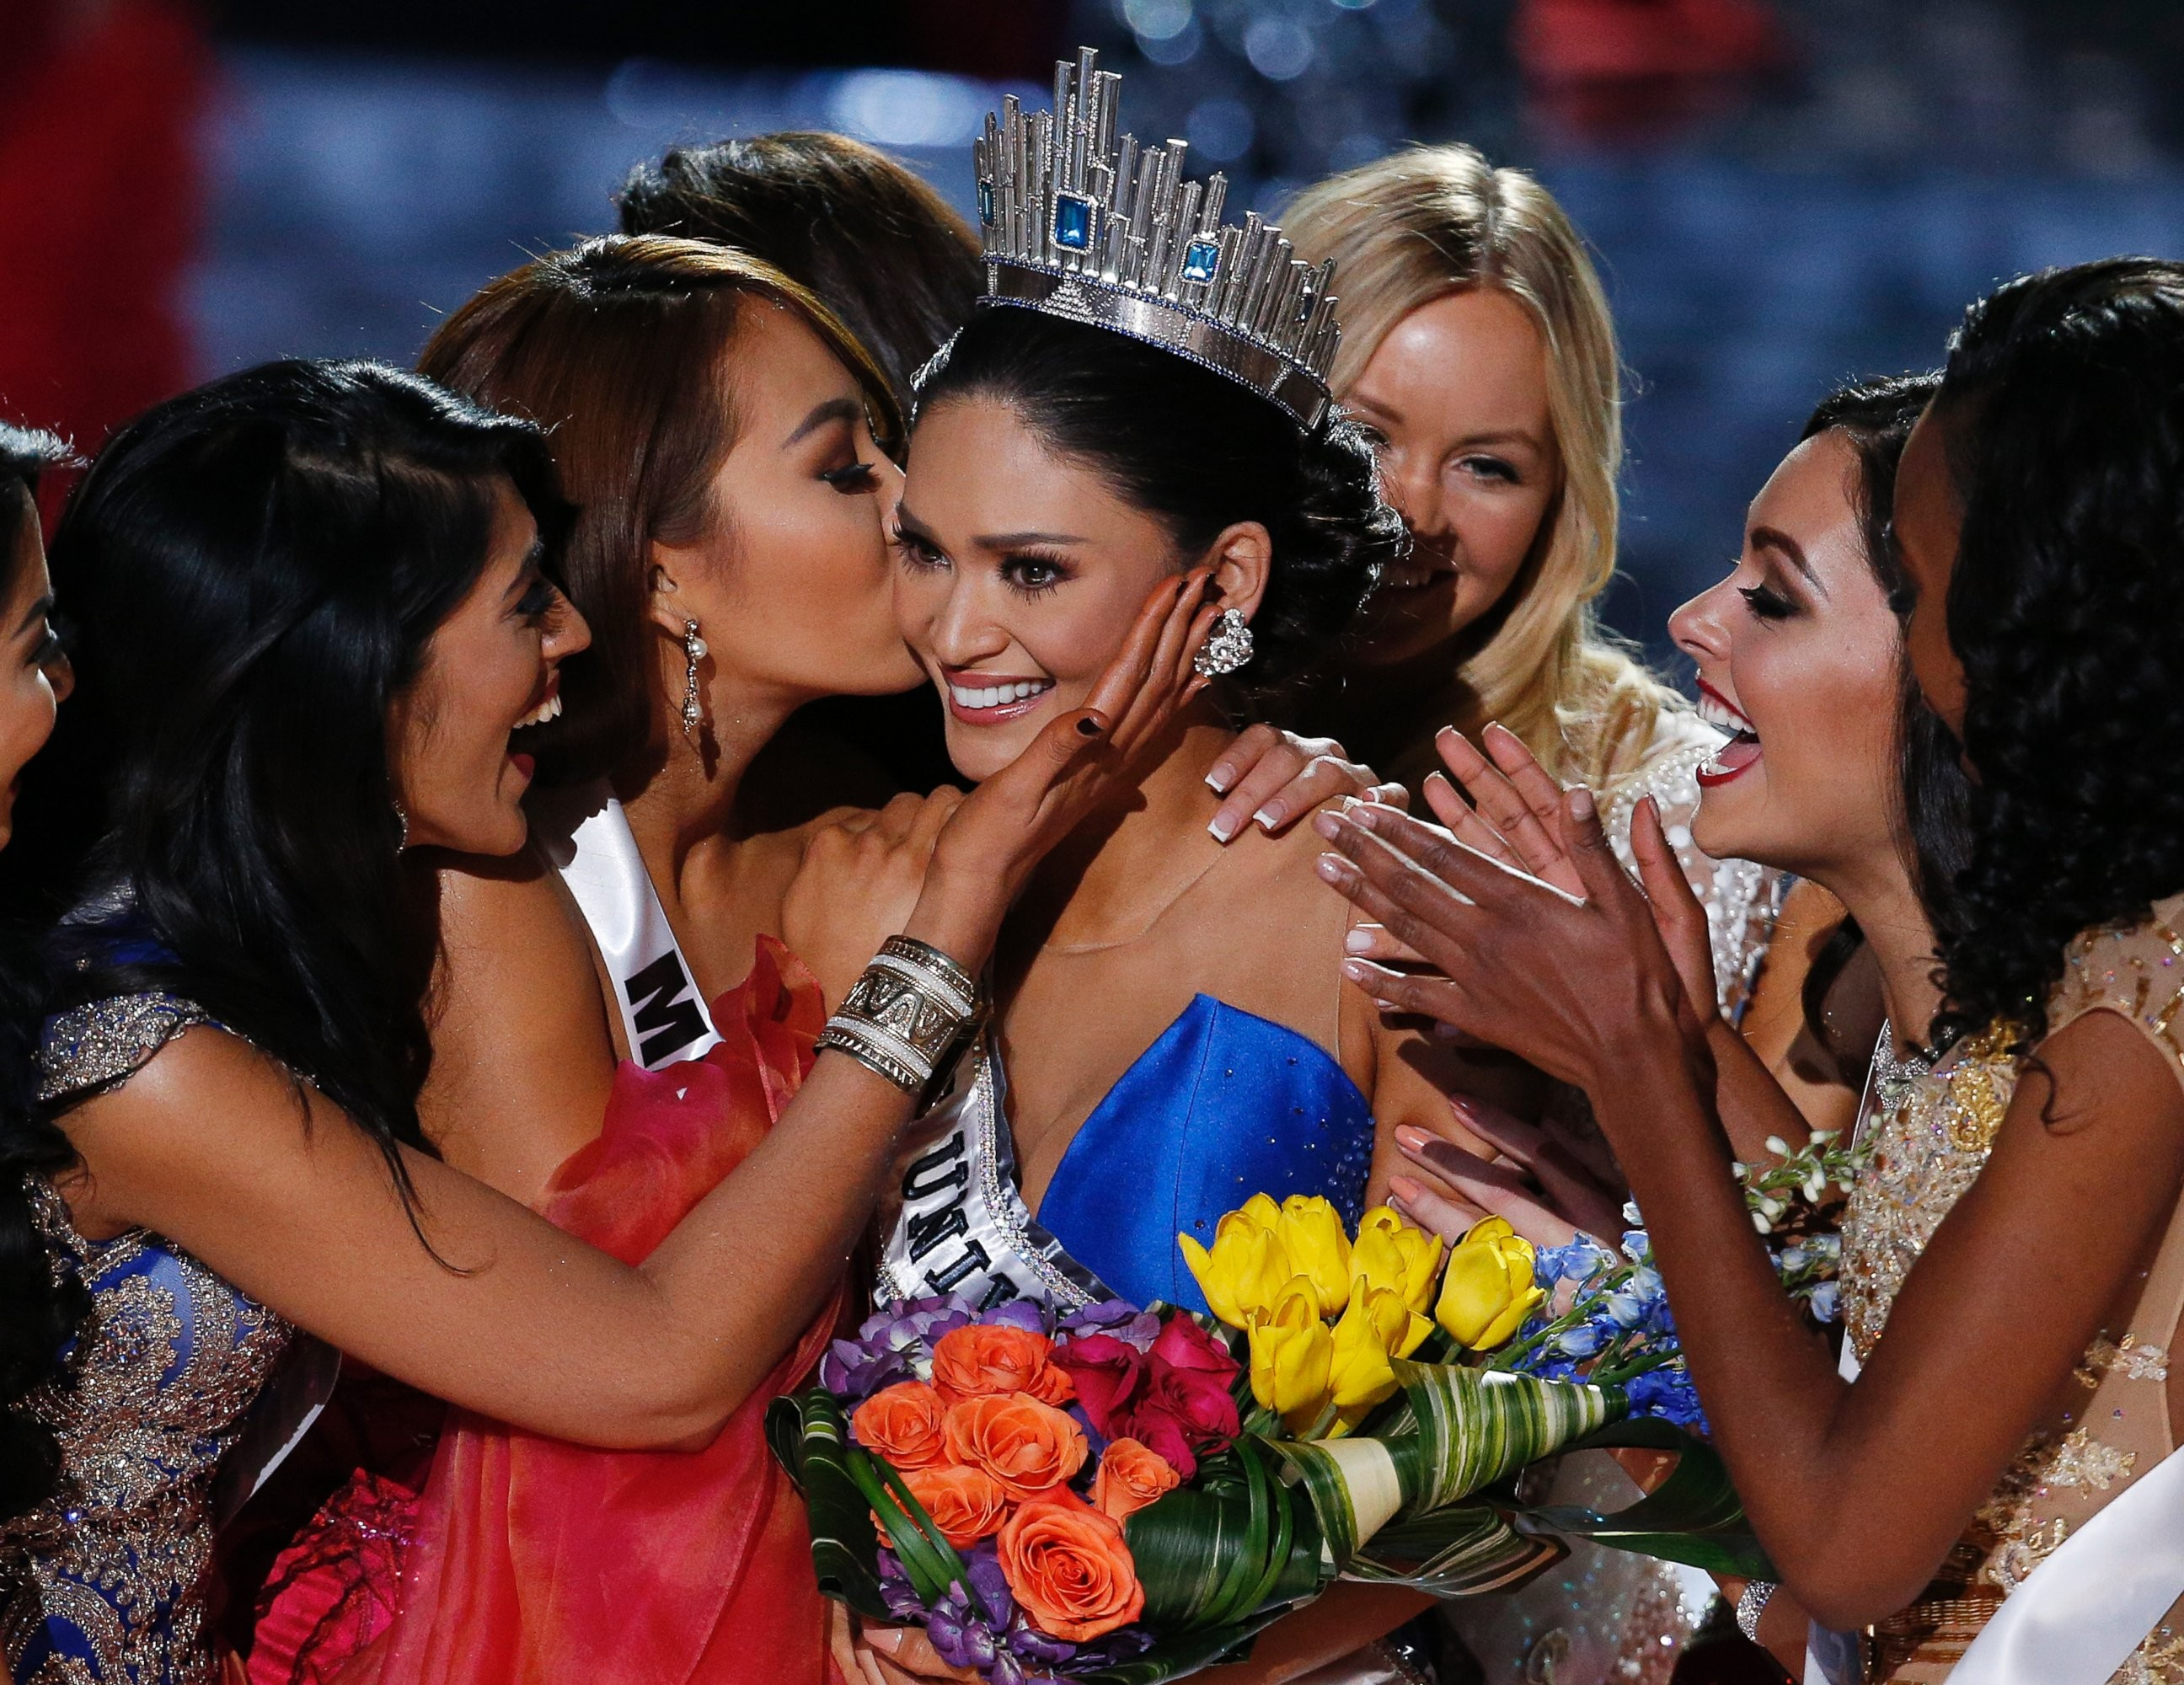 I Miss You Wallpapers Pictures 2015 2016: Wallpaper Pia Wurtzbach, Miss Universe 2015, Beauty